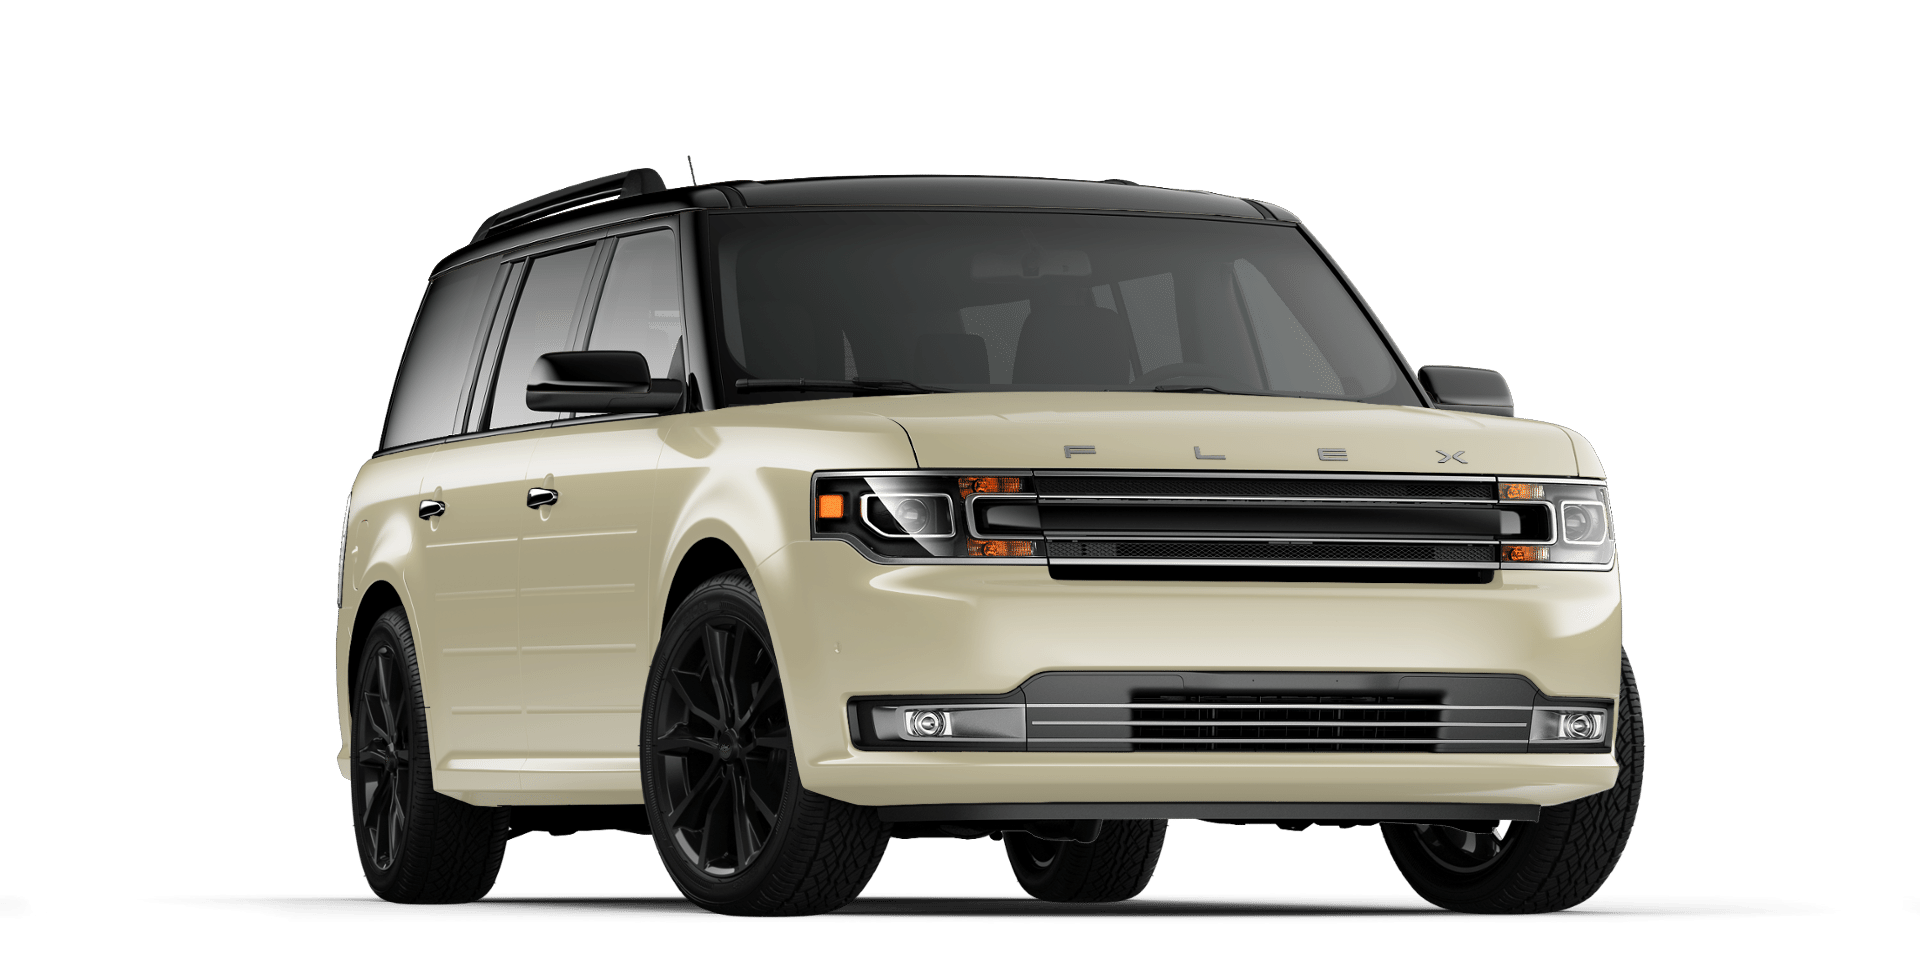 Pimped out flex nuff said scrap cars pinterest ford flex ford and cars